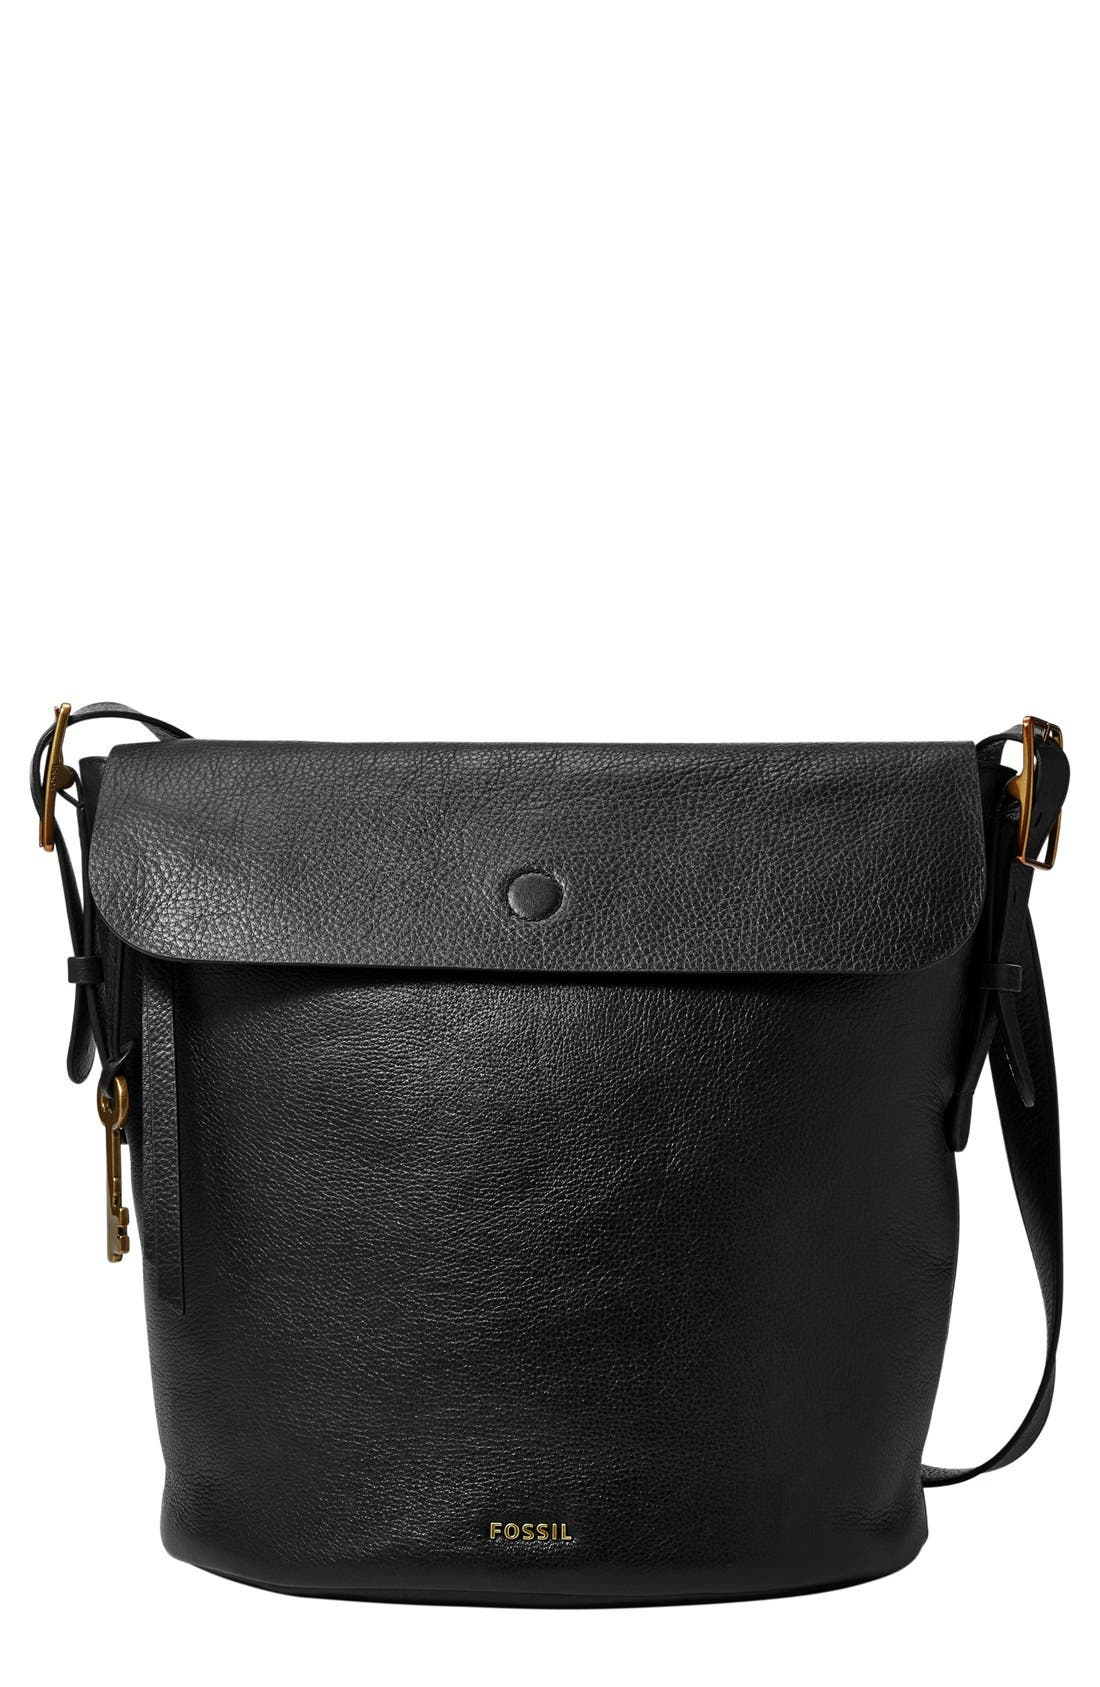 FOSSIL,                             'Haven' Leather Bucket Bag,                             Main thumbnail 1, color,                             001